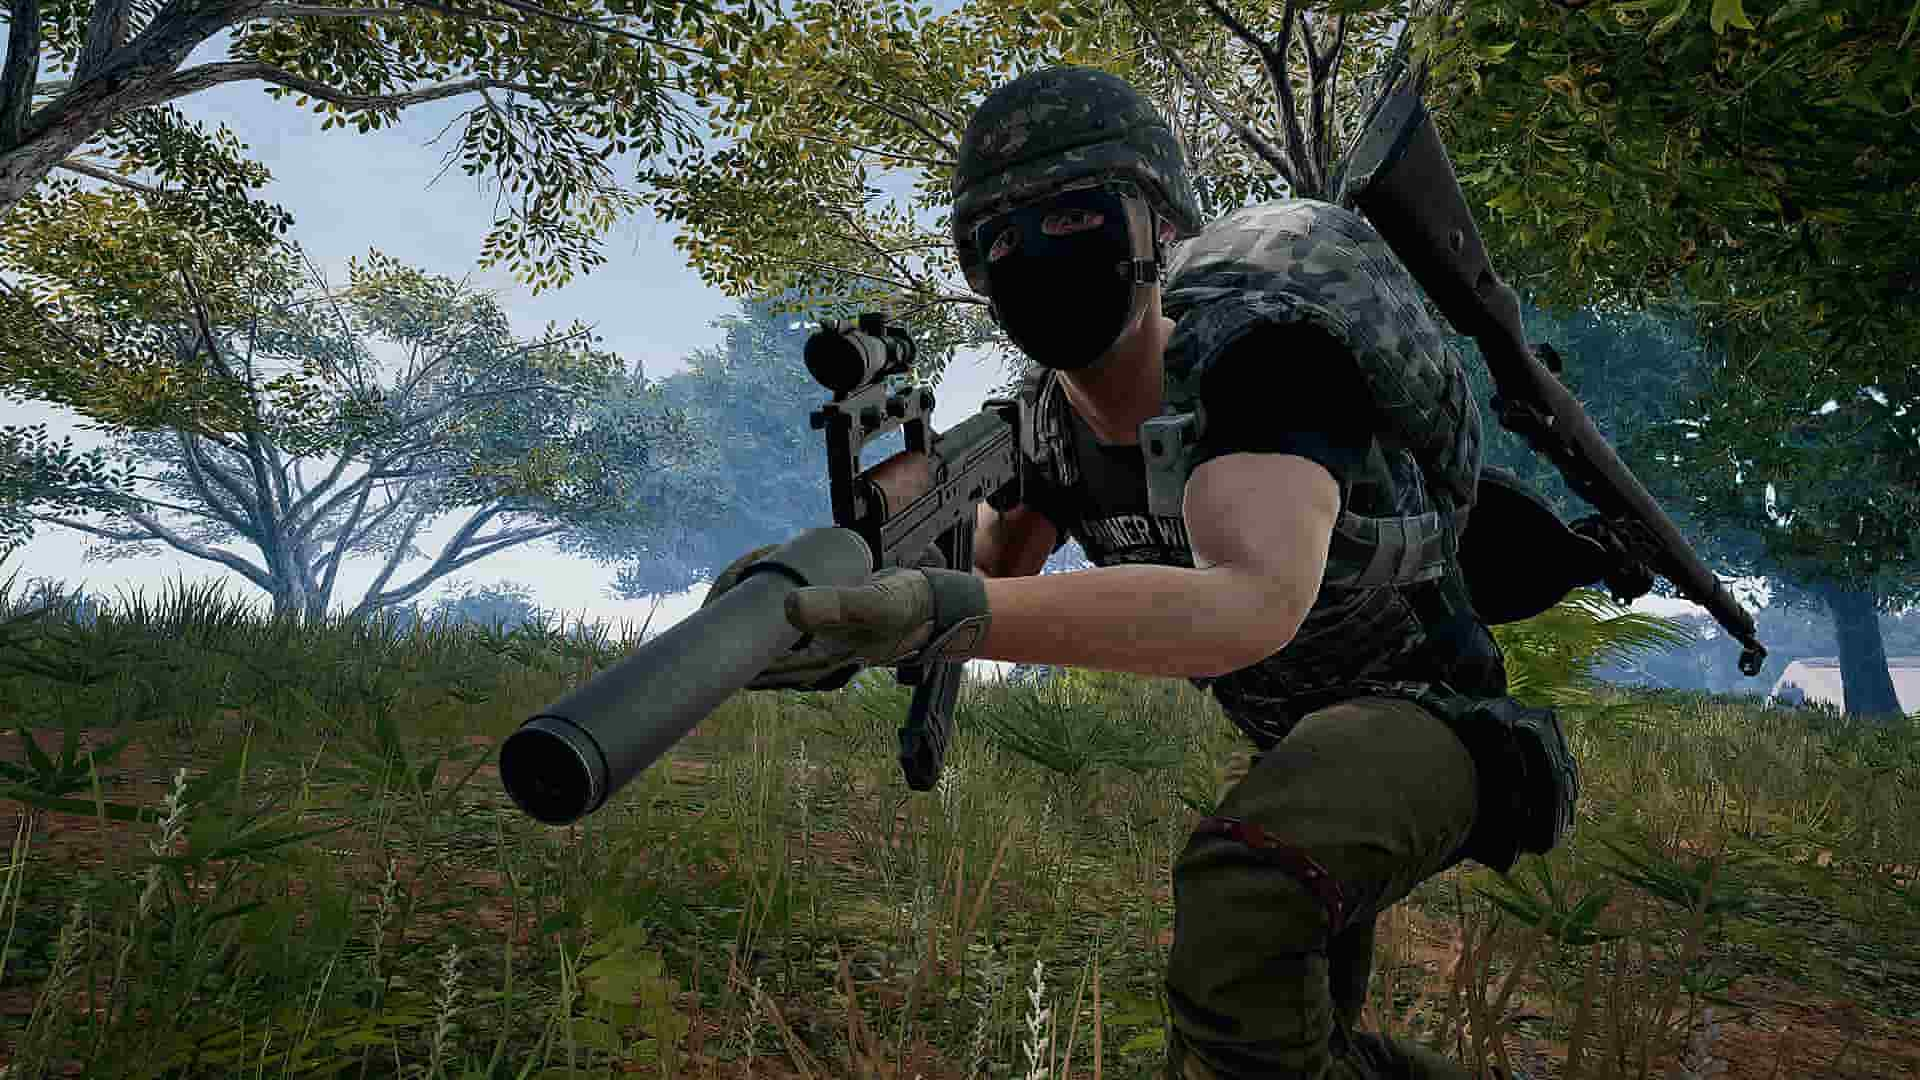 Sanhok Round 4 Testing: Xbox Games With Gold June 2018: Assassin's Creed, Sonic